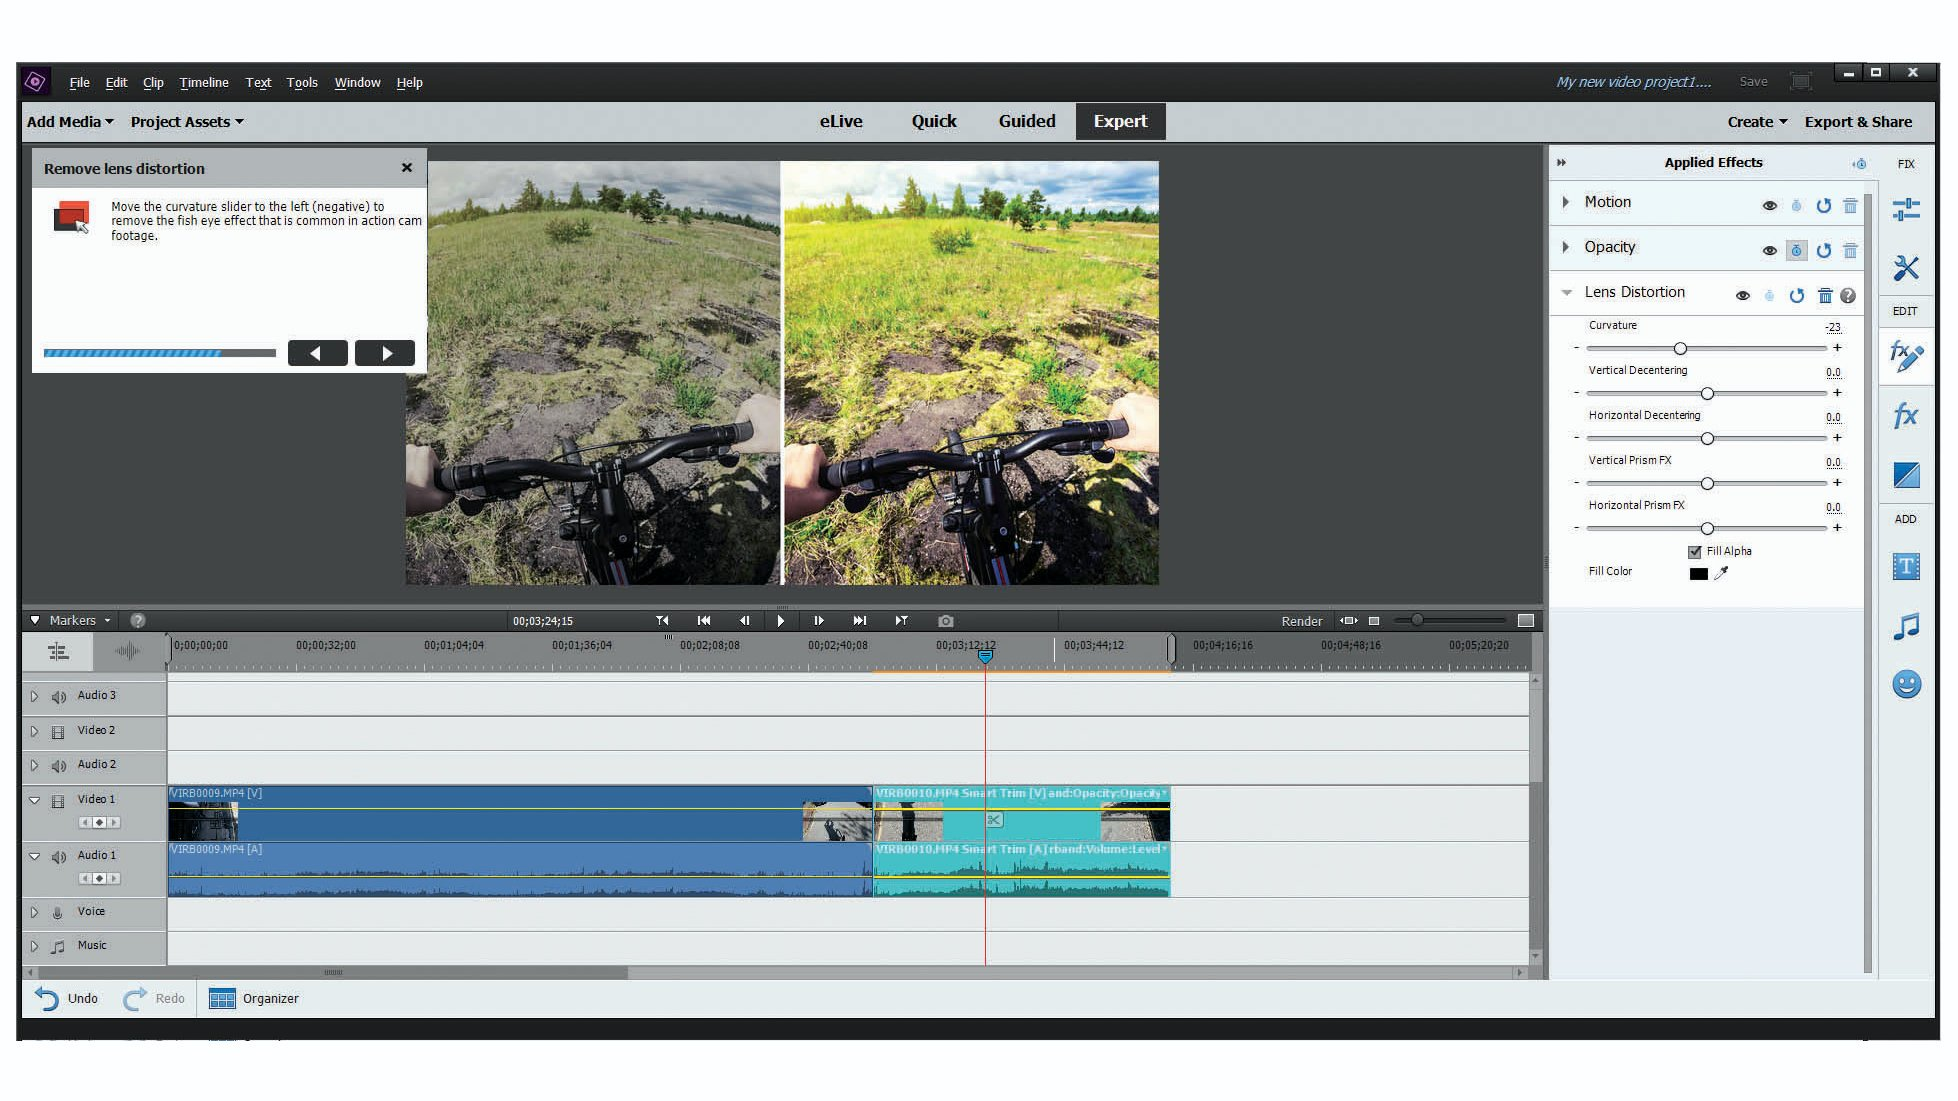 Adobe Premiere Elements review 2018: Perfect for first-time video